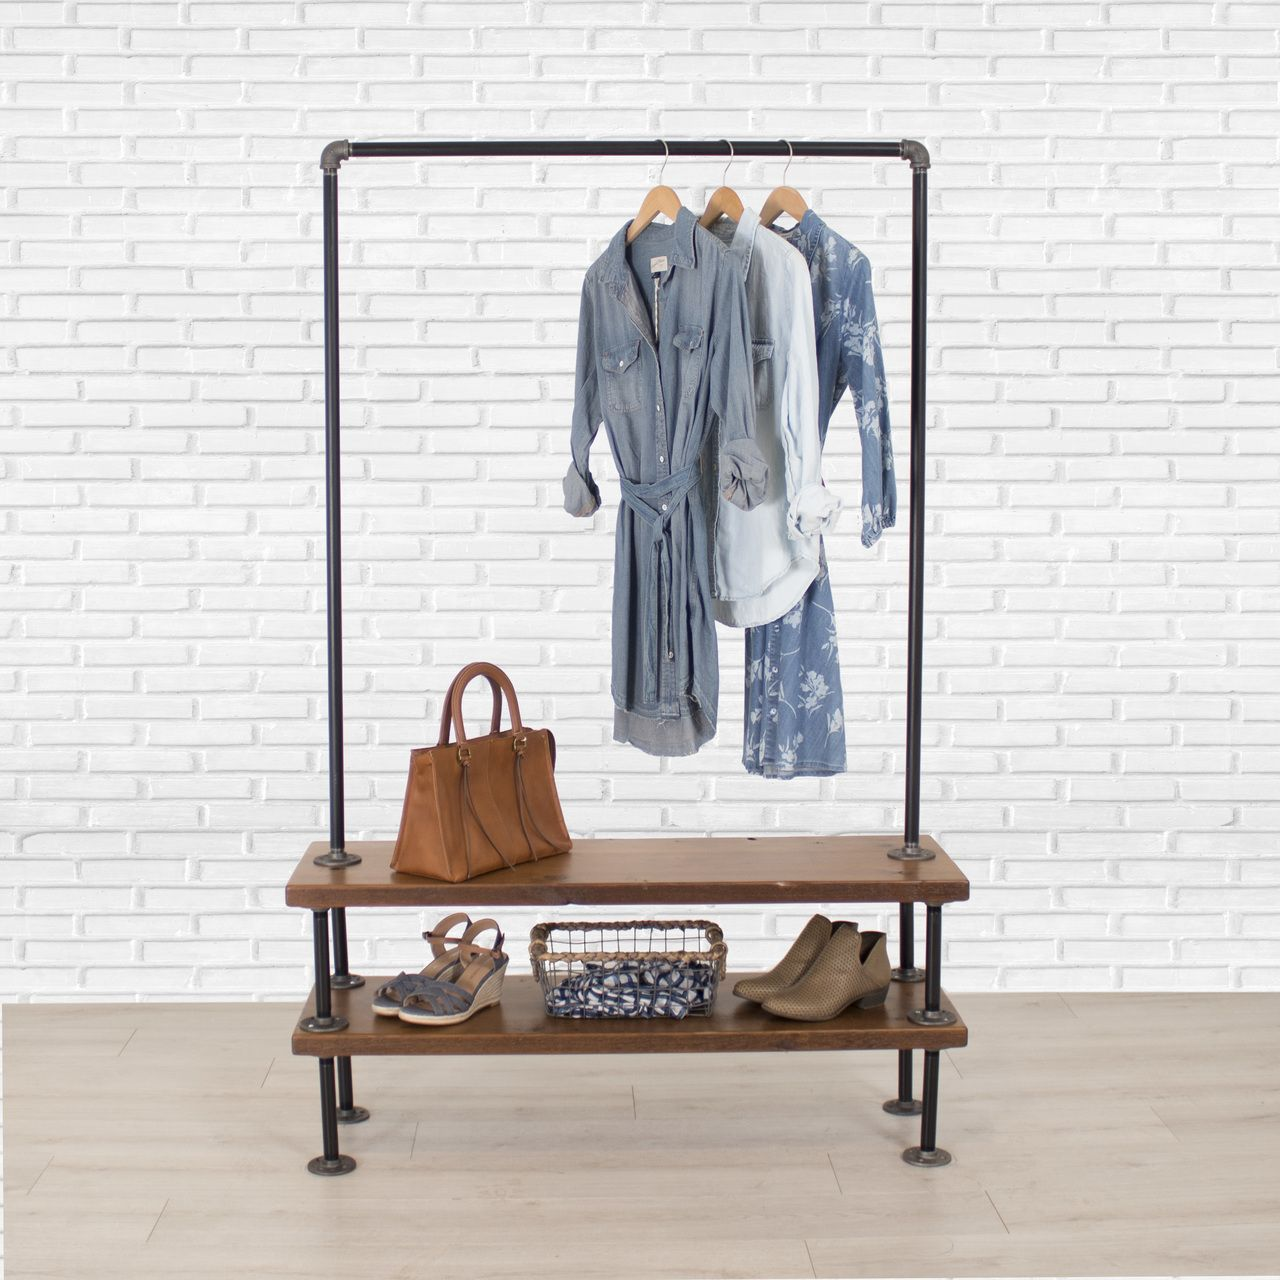 Industrial Pipe Clothing Rack with Cedar Wood Shelves   Double Shelf is part of Clothes Rack Boho - Premium wardrobe storage and display without the premium price tag  Shop William Roberts Vintage for your double shelf industrial pipe clothing racks